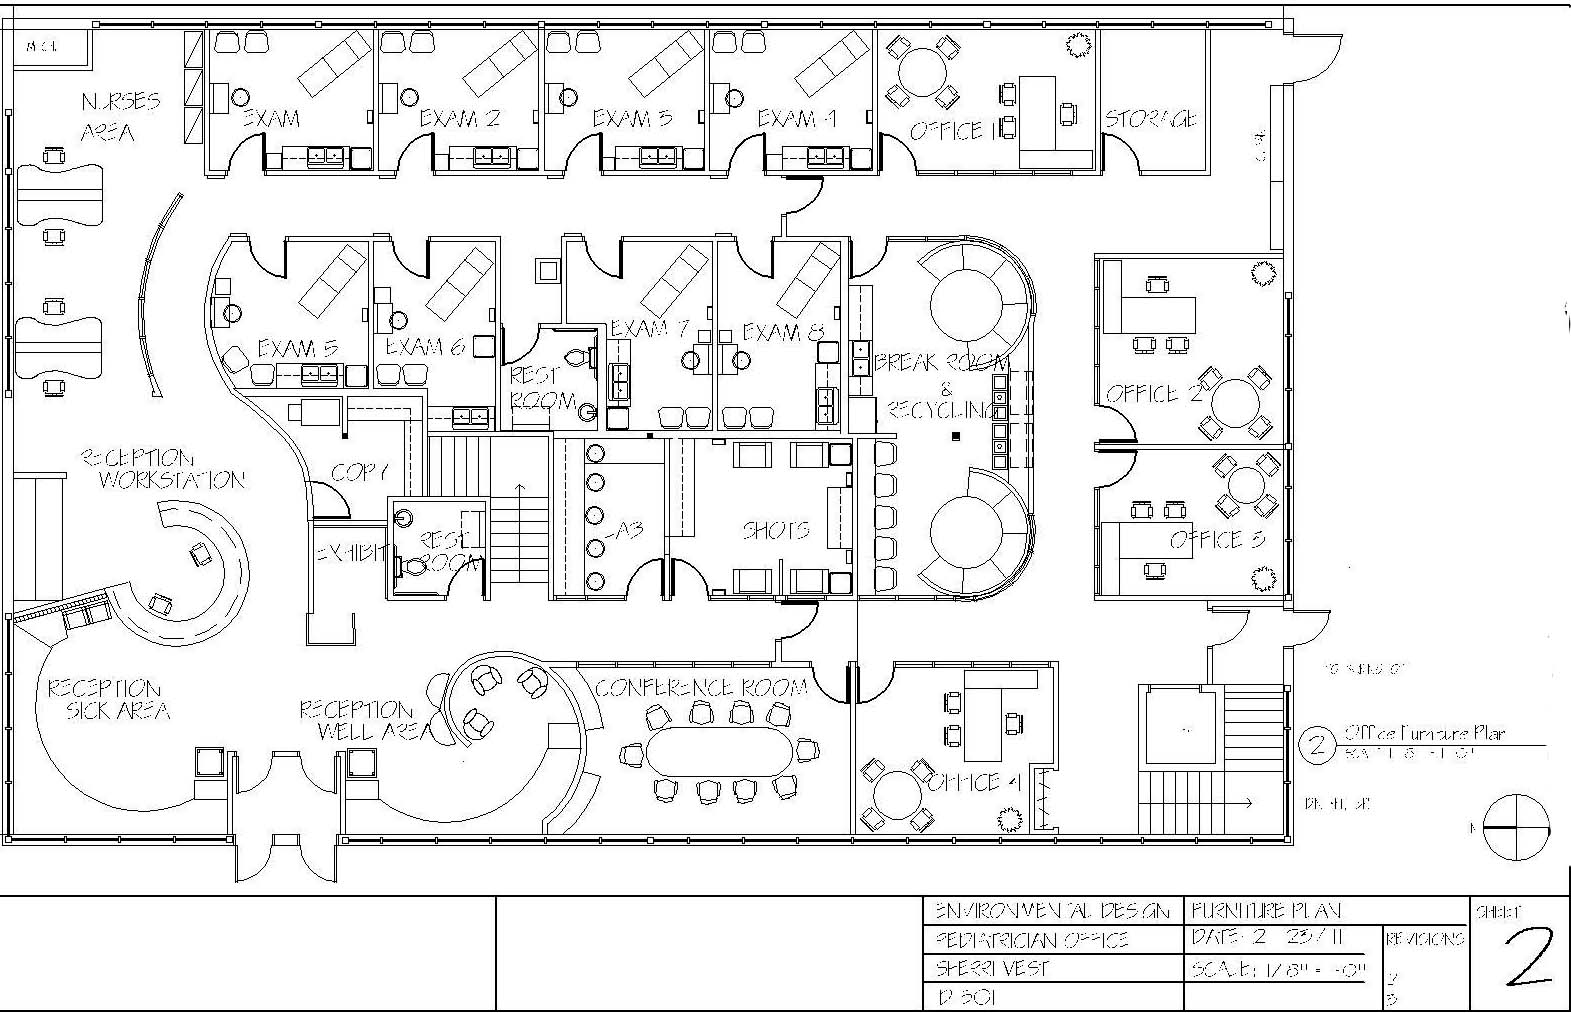 Pediatric office floor plan by sherri vest at for Office building plans and designs